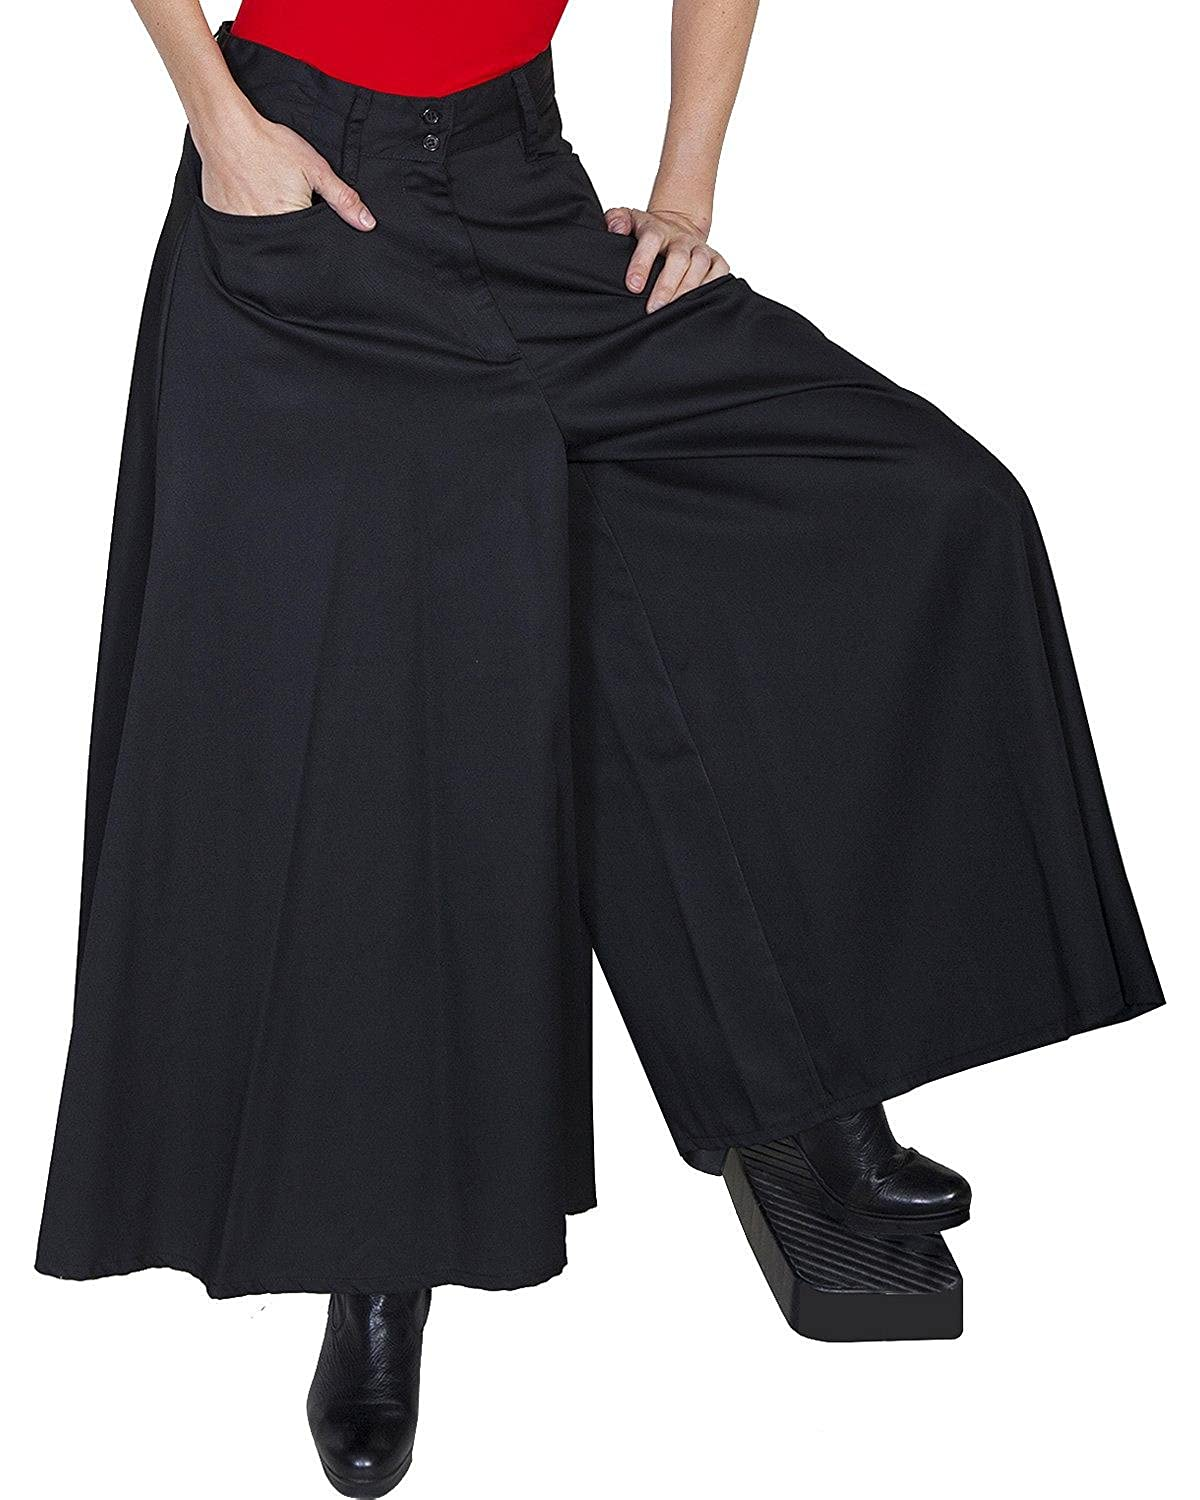 Steampunk Women's Pants, Leggings & Bloomers Scully Womens Long Split Skirt $83.74 AT vintagedancer.com